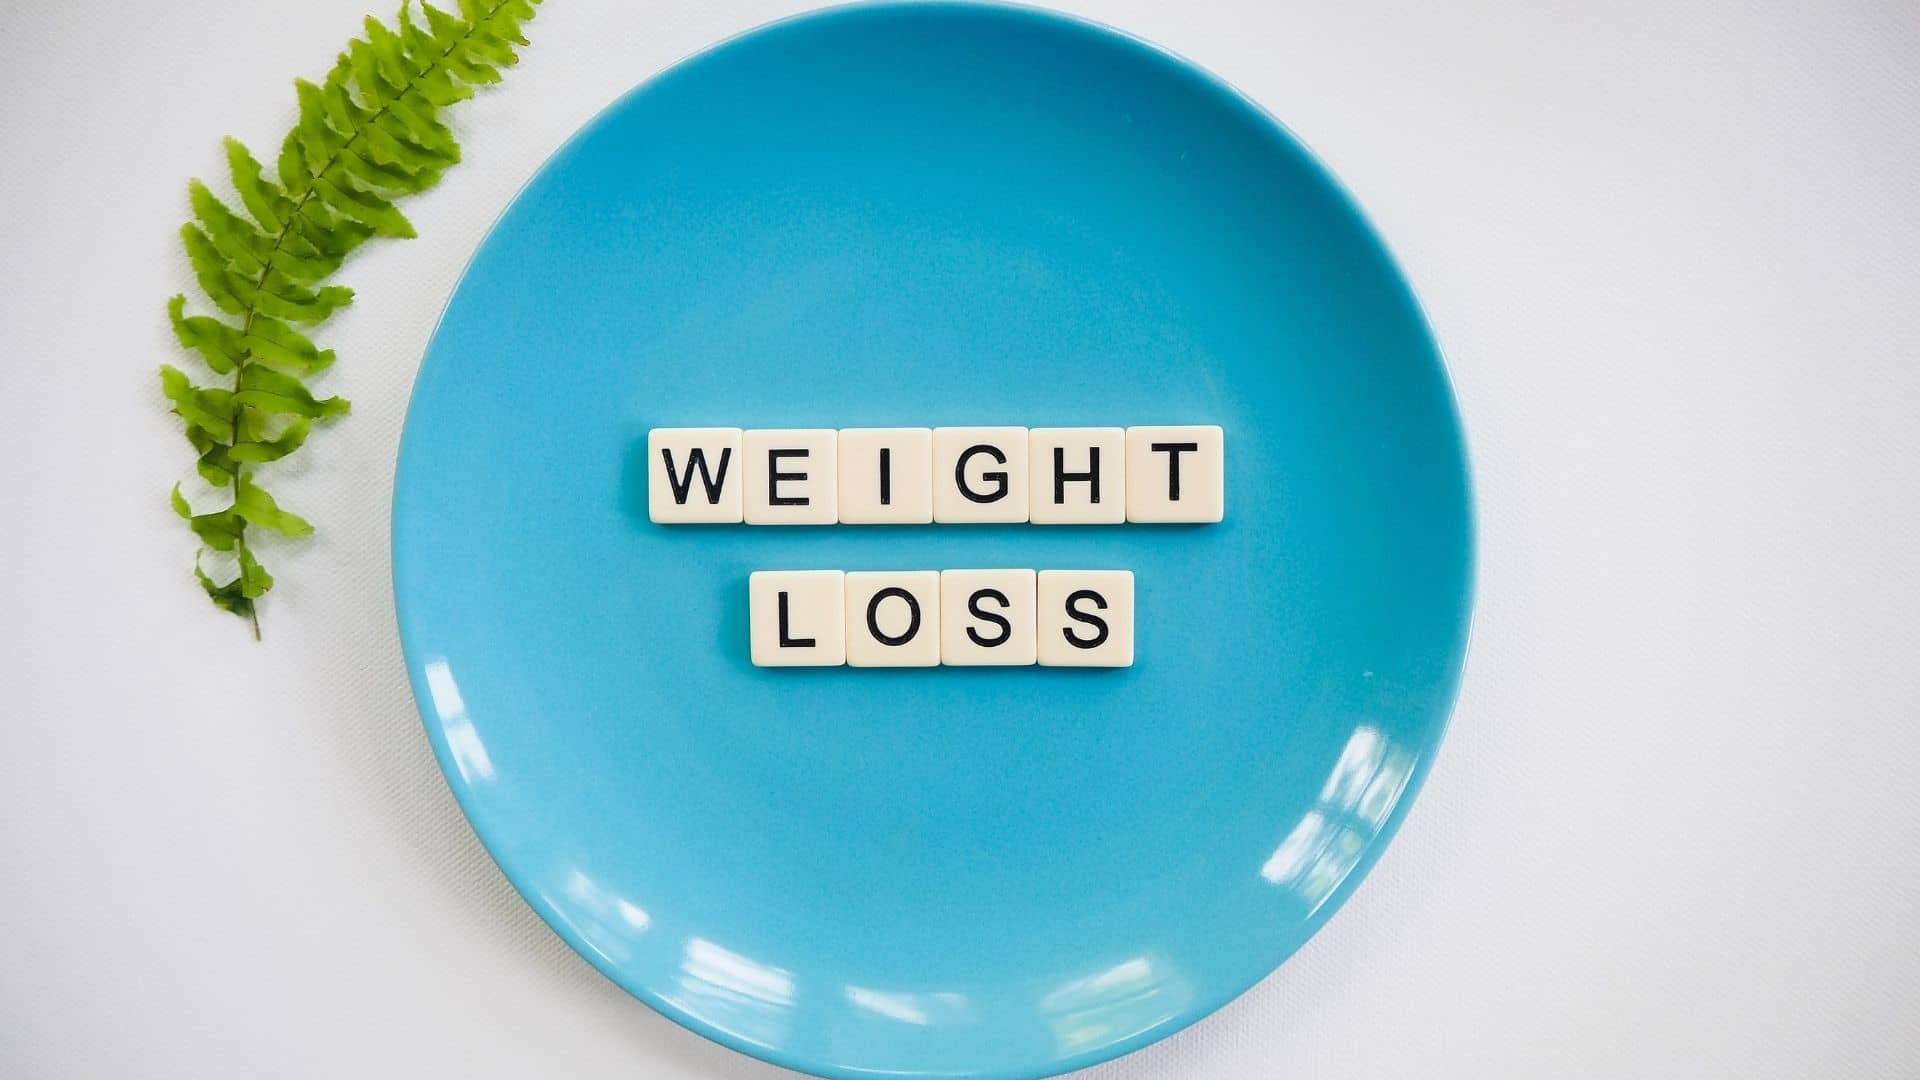 Weight Loss Plateau, Weight Loss, weight loss programs, workout routine, weight loss diet, fat burning